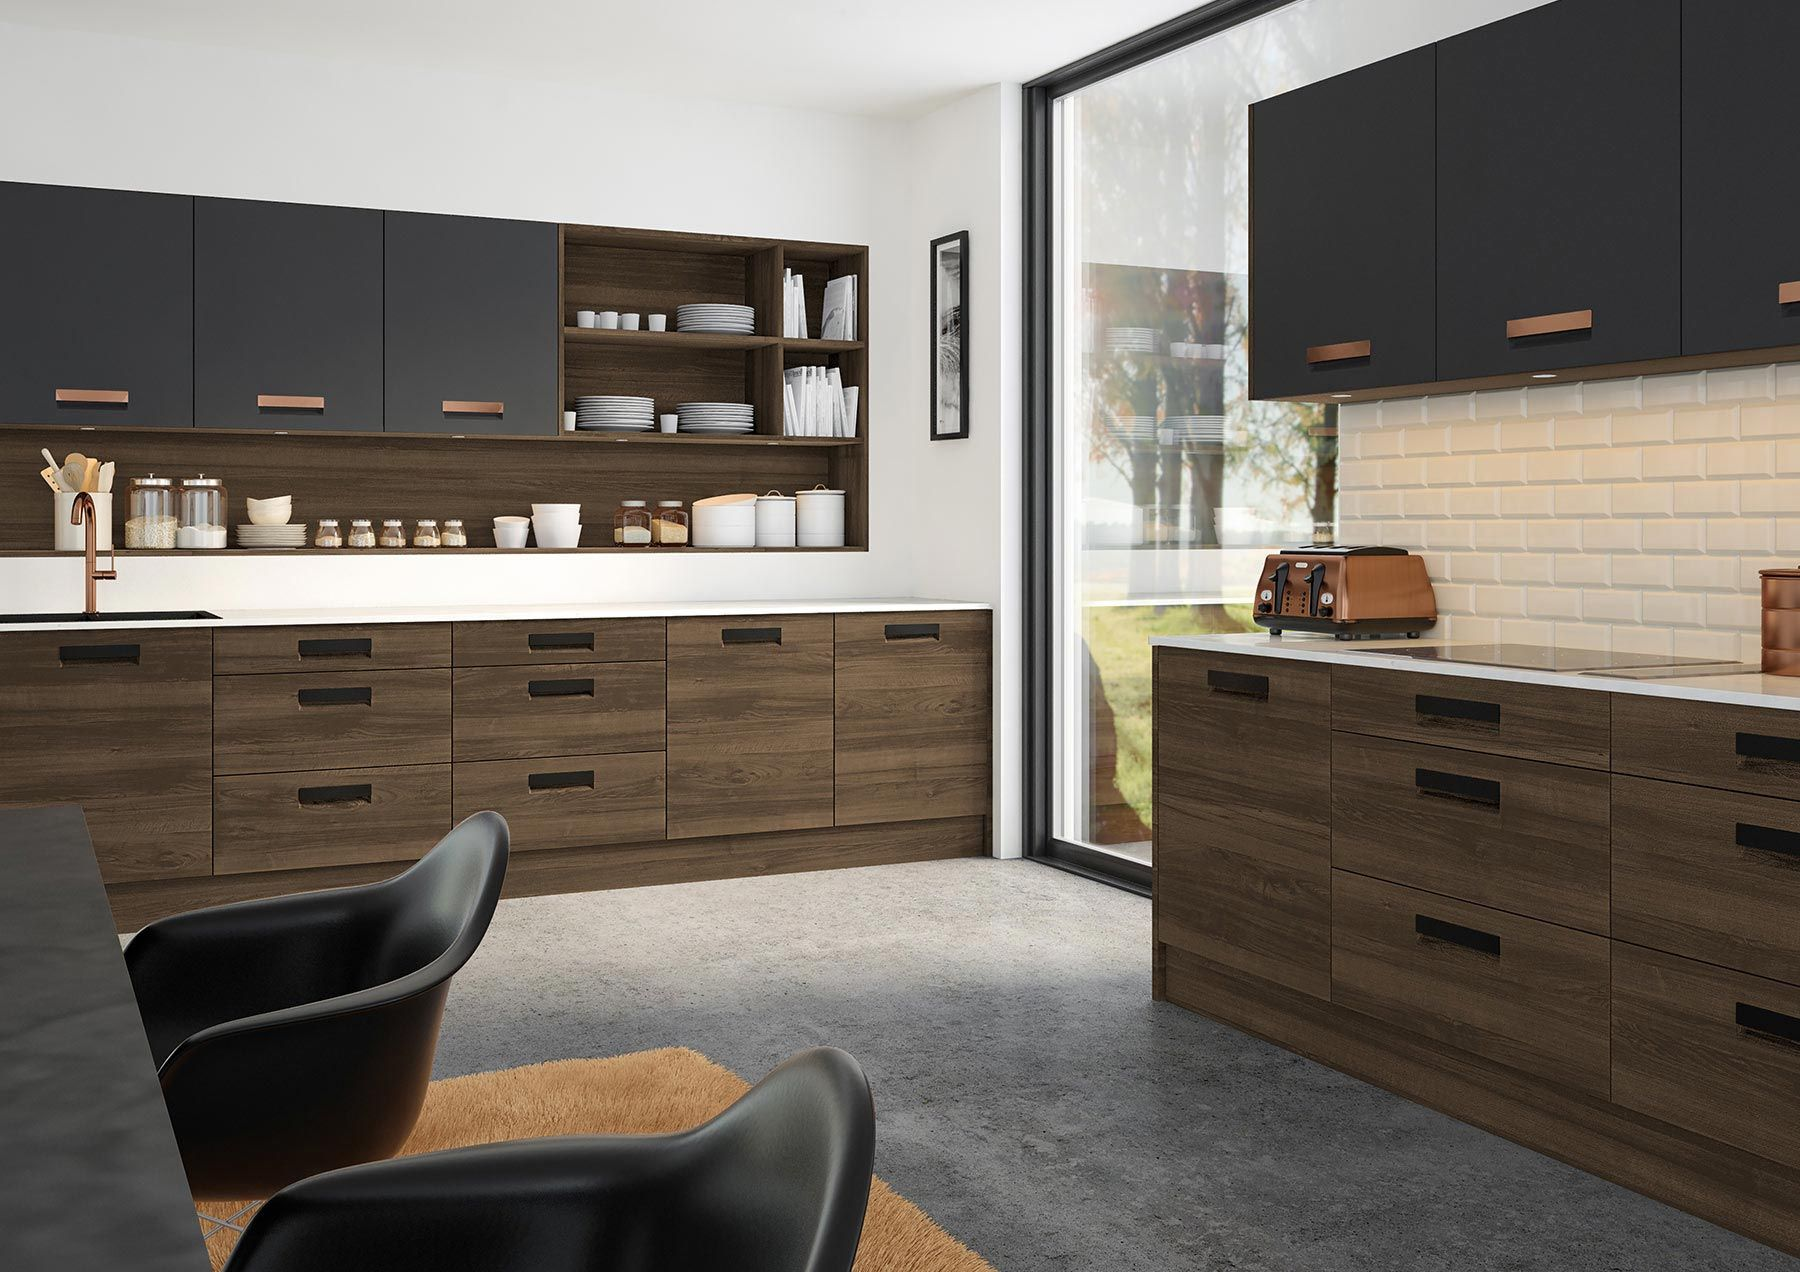 Home Dkb Kitchens And Bedrooms